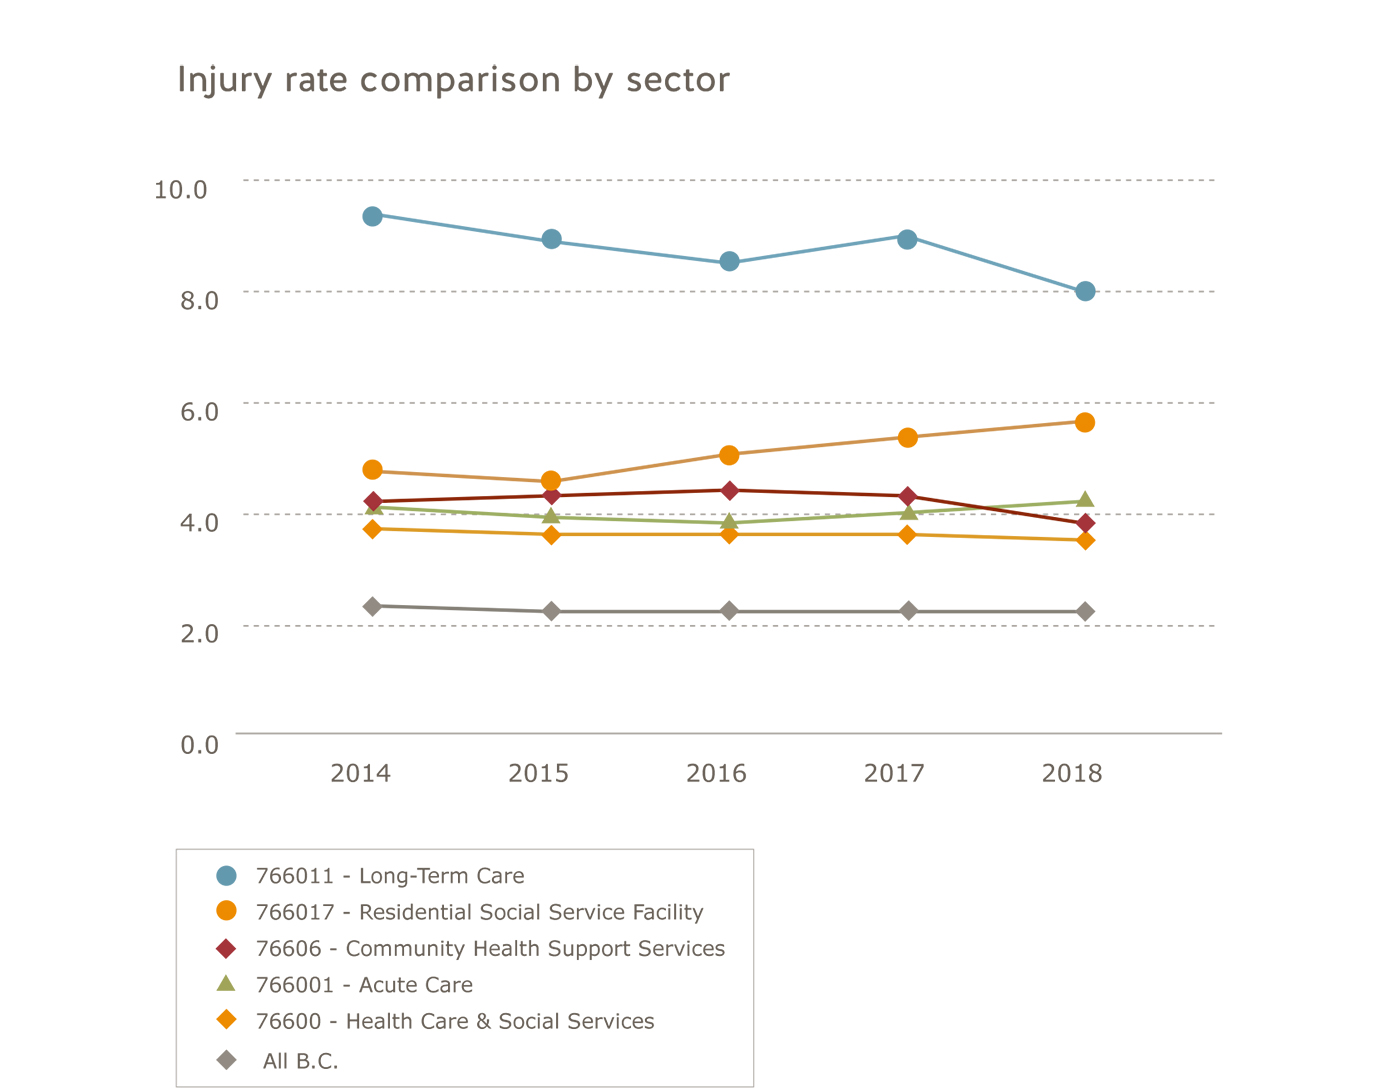 Health care and social services injury rate comparison by sector for 2014 to 2018